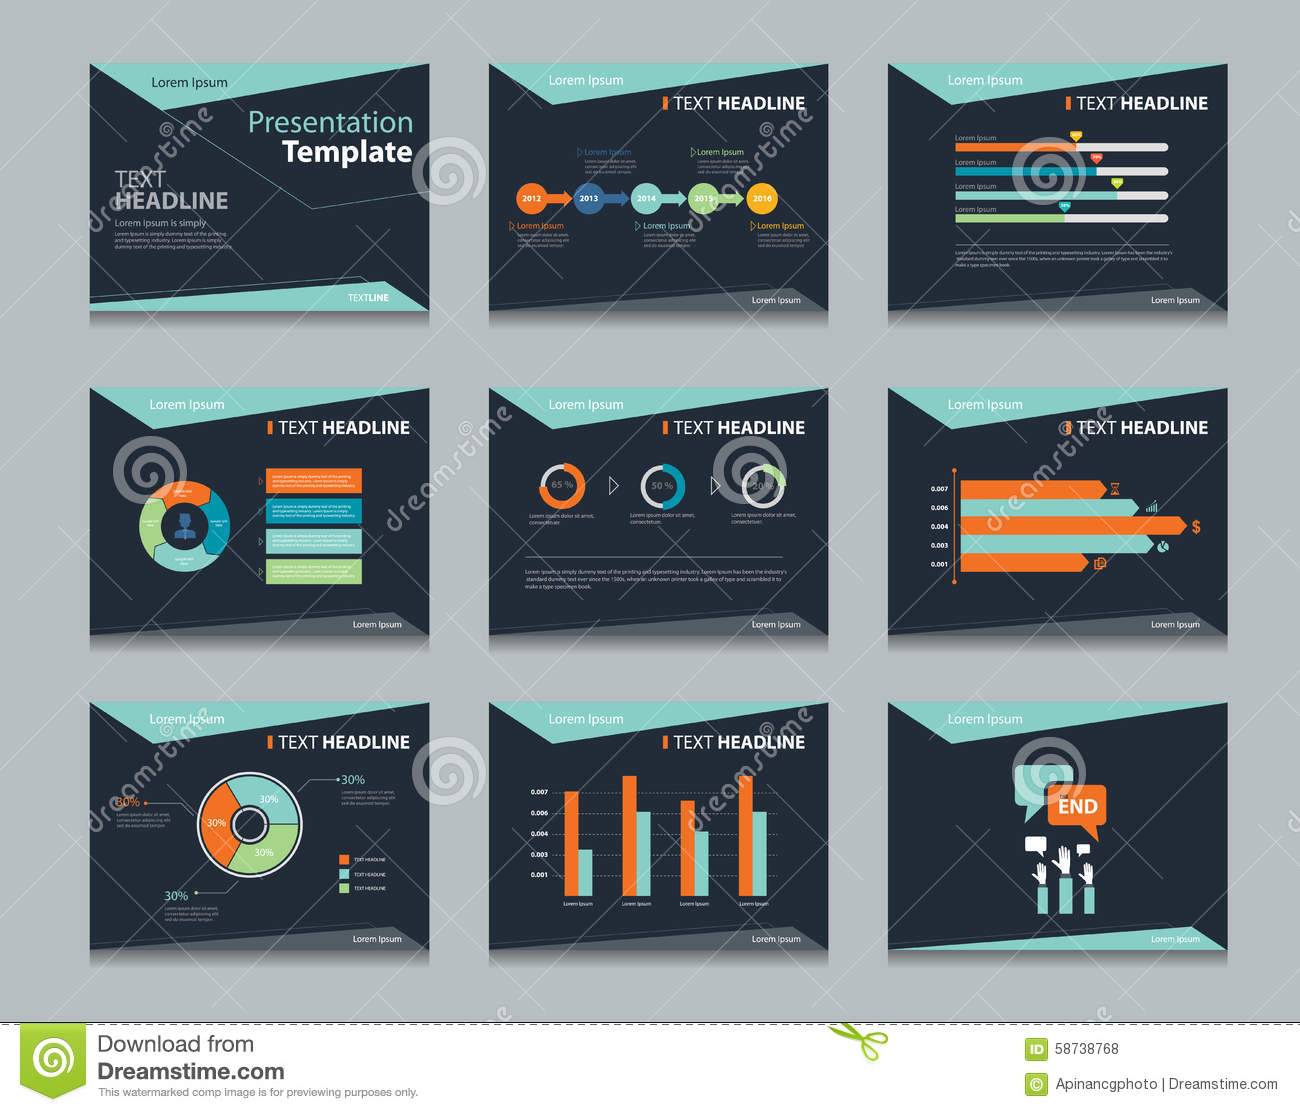 Free design powerpoint templatesradiodigital free design powerpoint toneelgroepblik Images